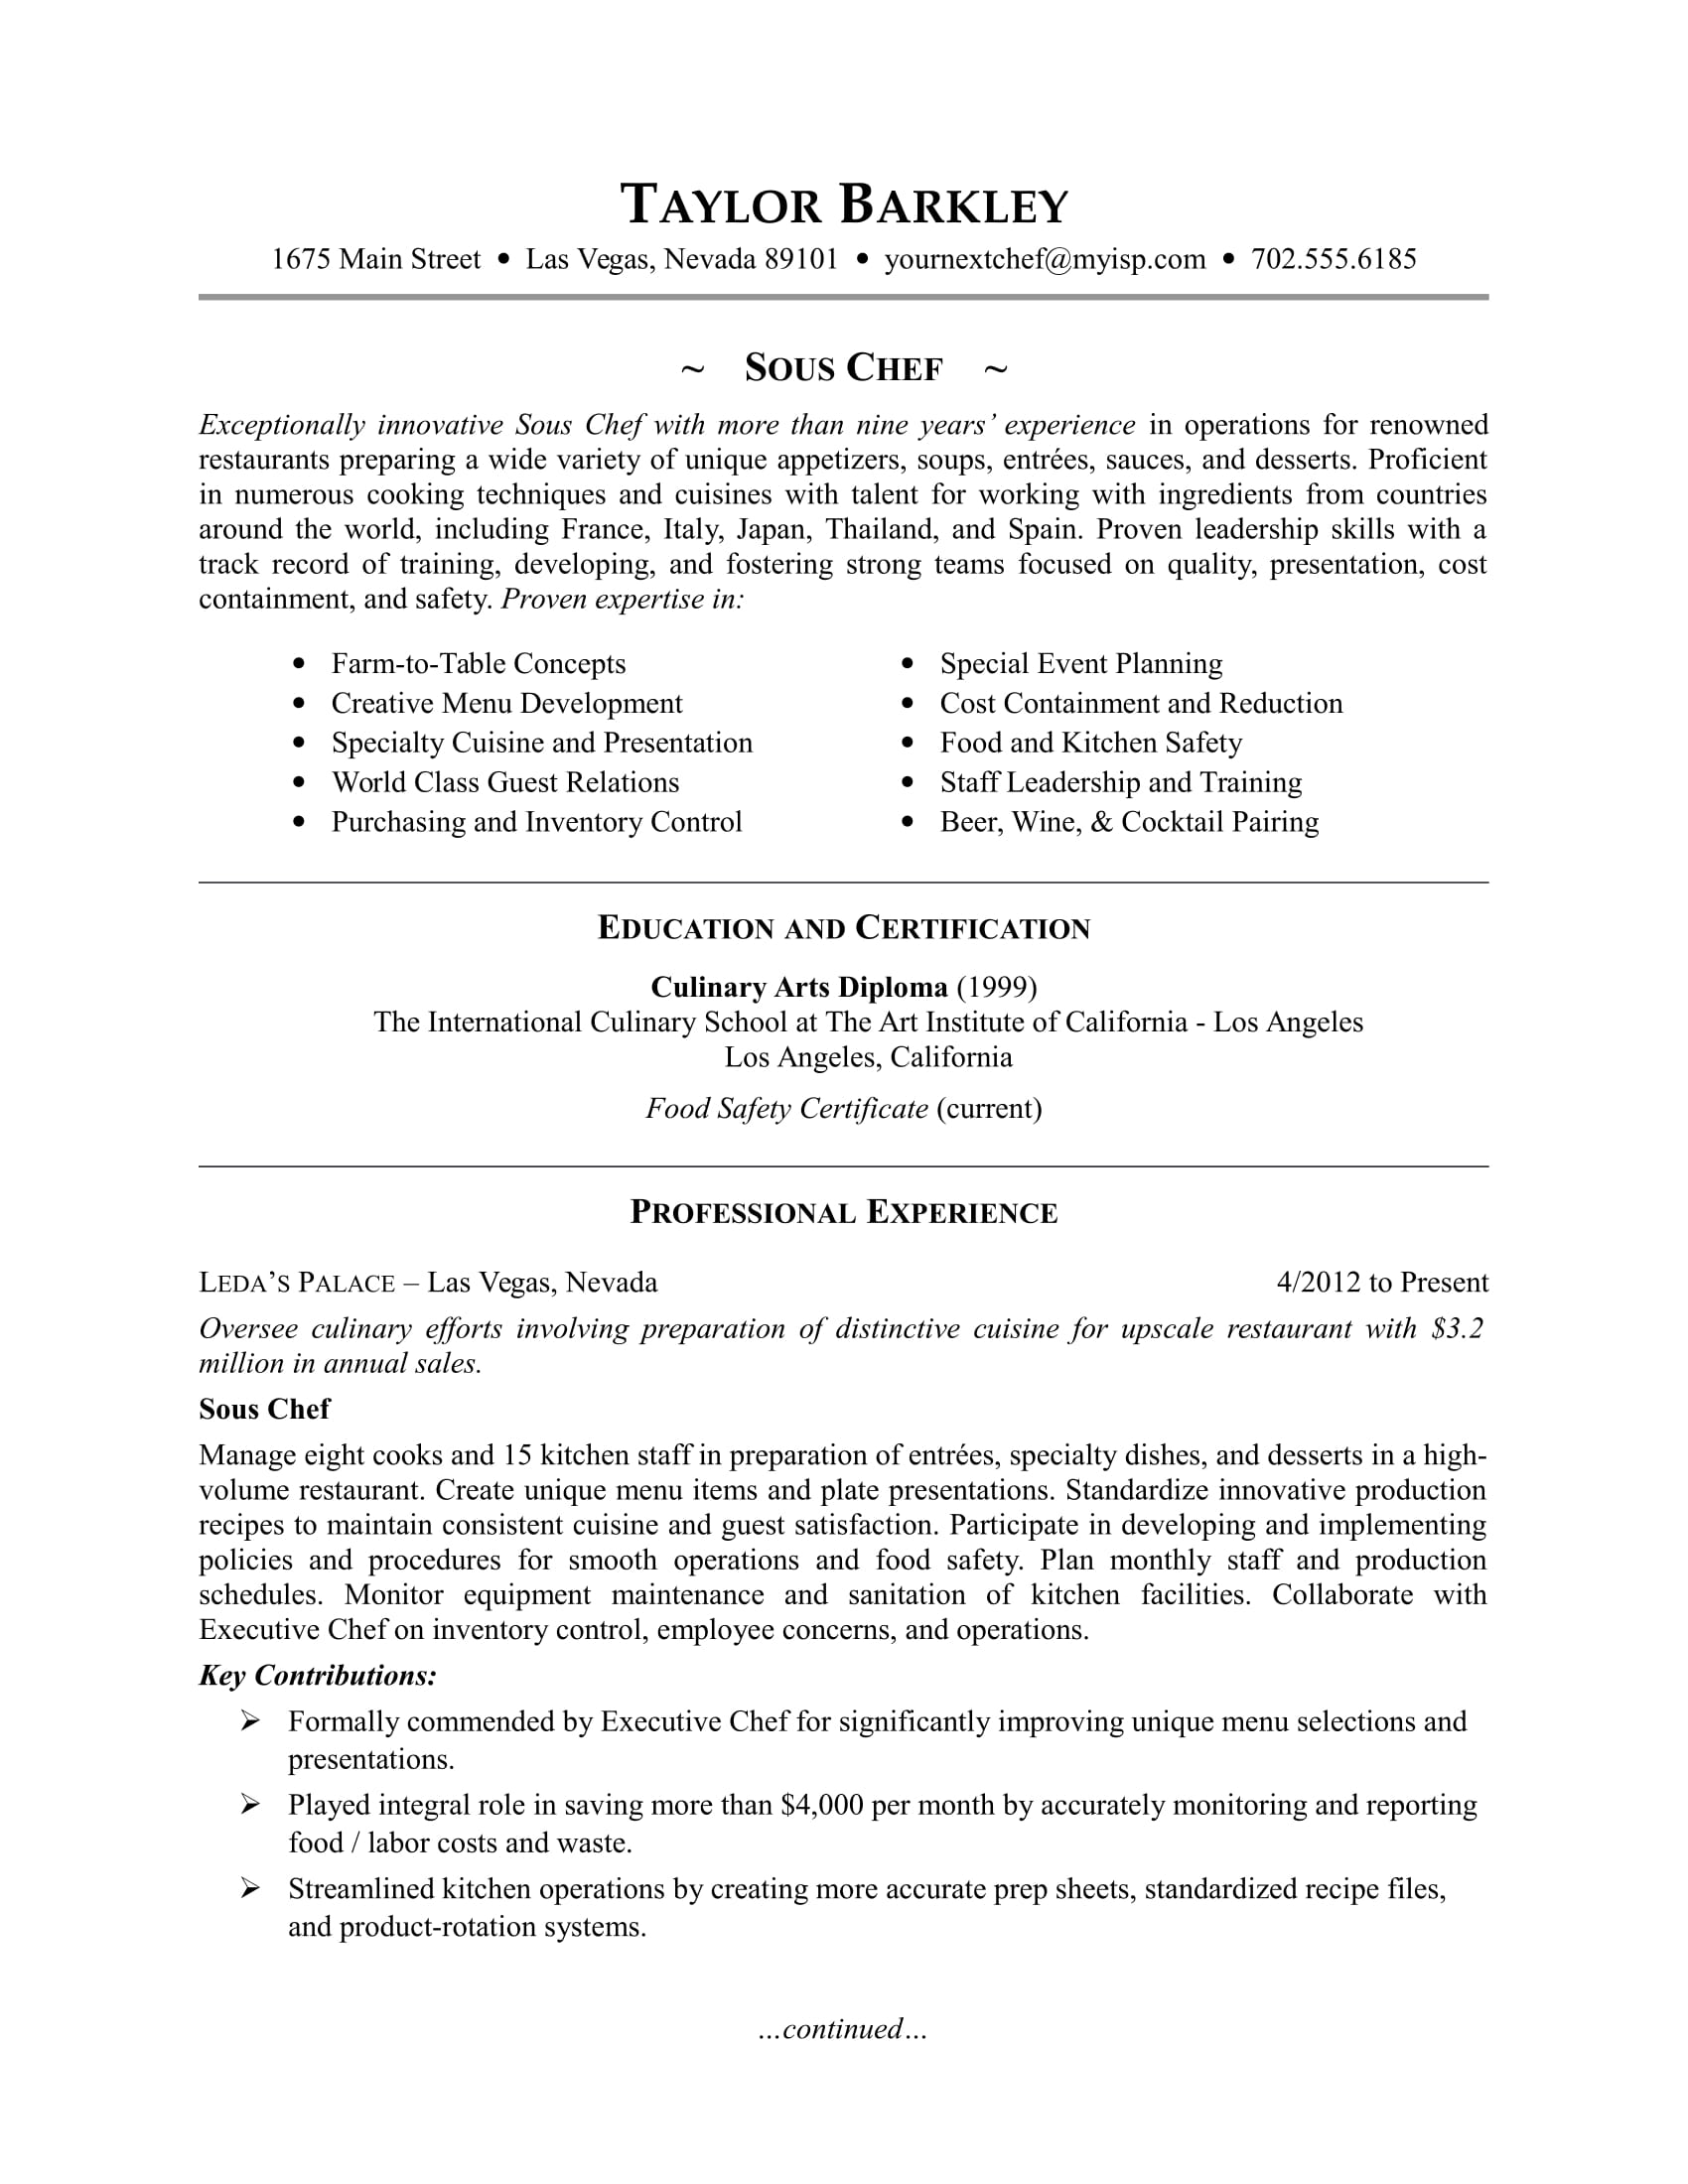 sample resume for a sous chef - Chef Resume Example